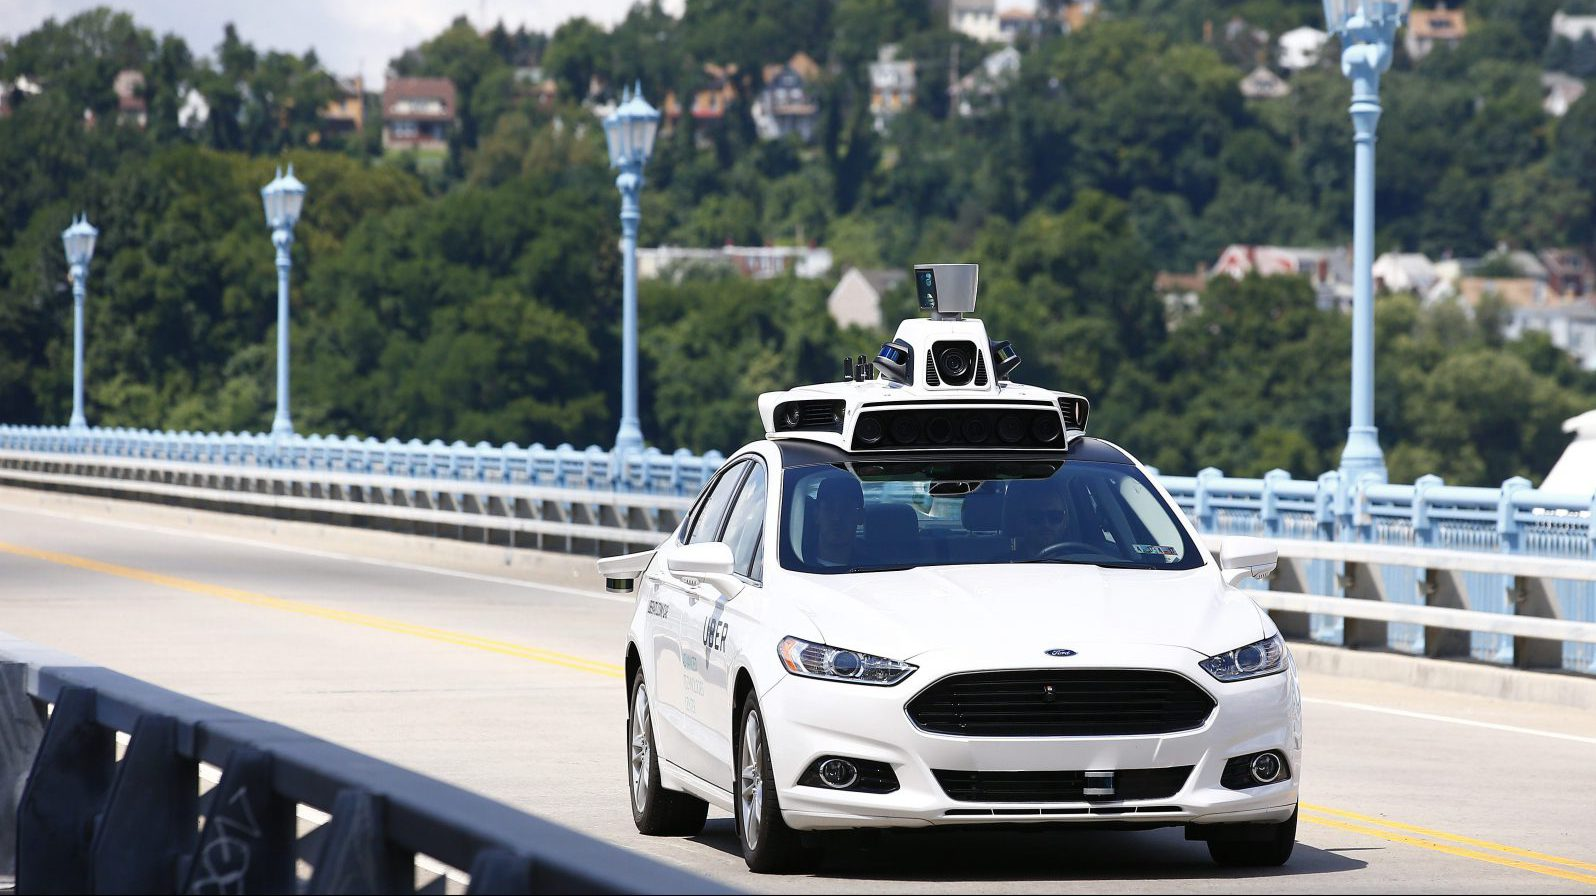 FILE - In this Thursday, Aug. 18, 2016, file photo, Uber employees test a self-driving Ford Fusion hybrid car, in Pittsburgh. After taking millions of factory jobs, robots could be coming for a new class of worker: people who drive for a living.